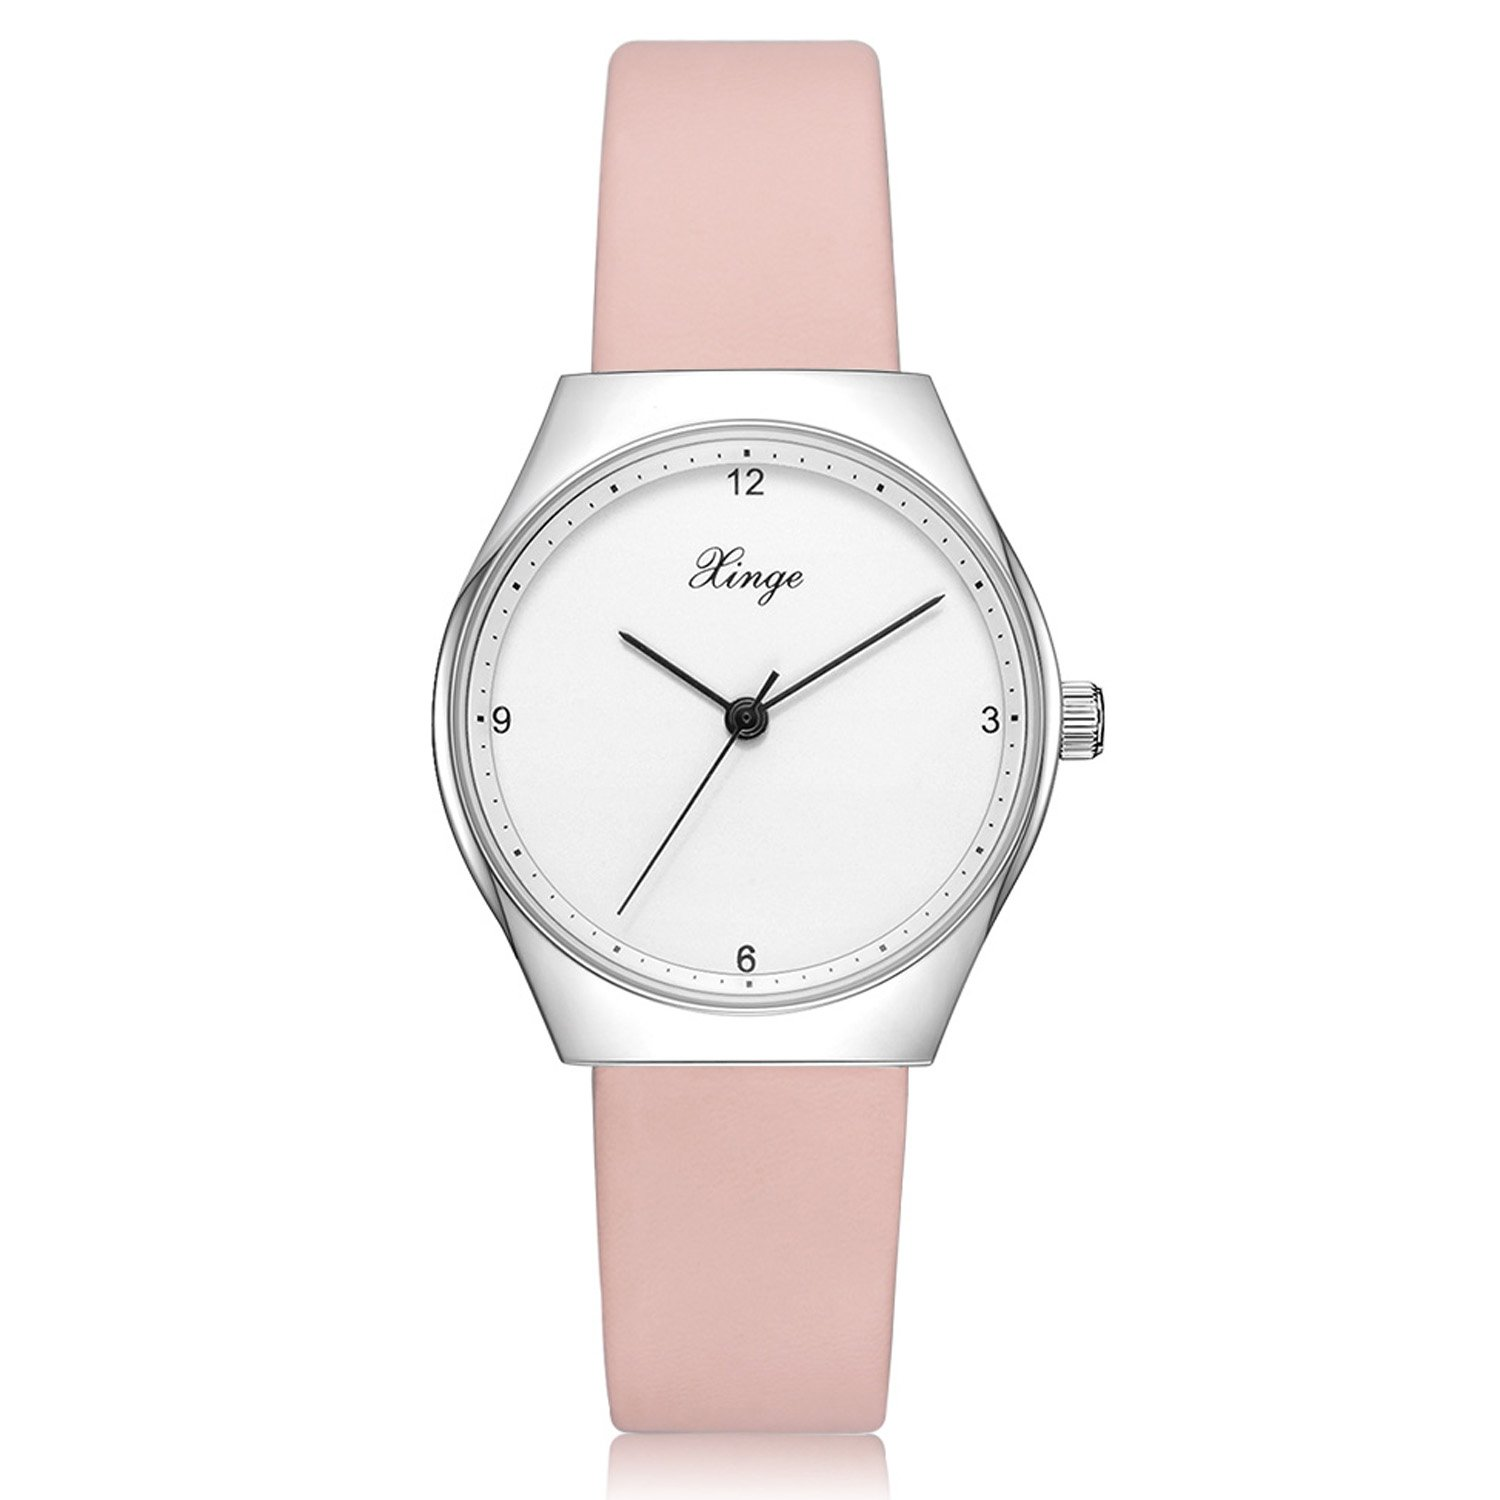 Womens Casual Fashion Watch Leather Band Retro Classic Analog Quartz Ladies Watches (Pink)